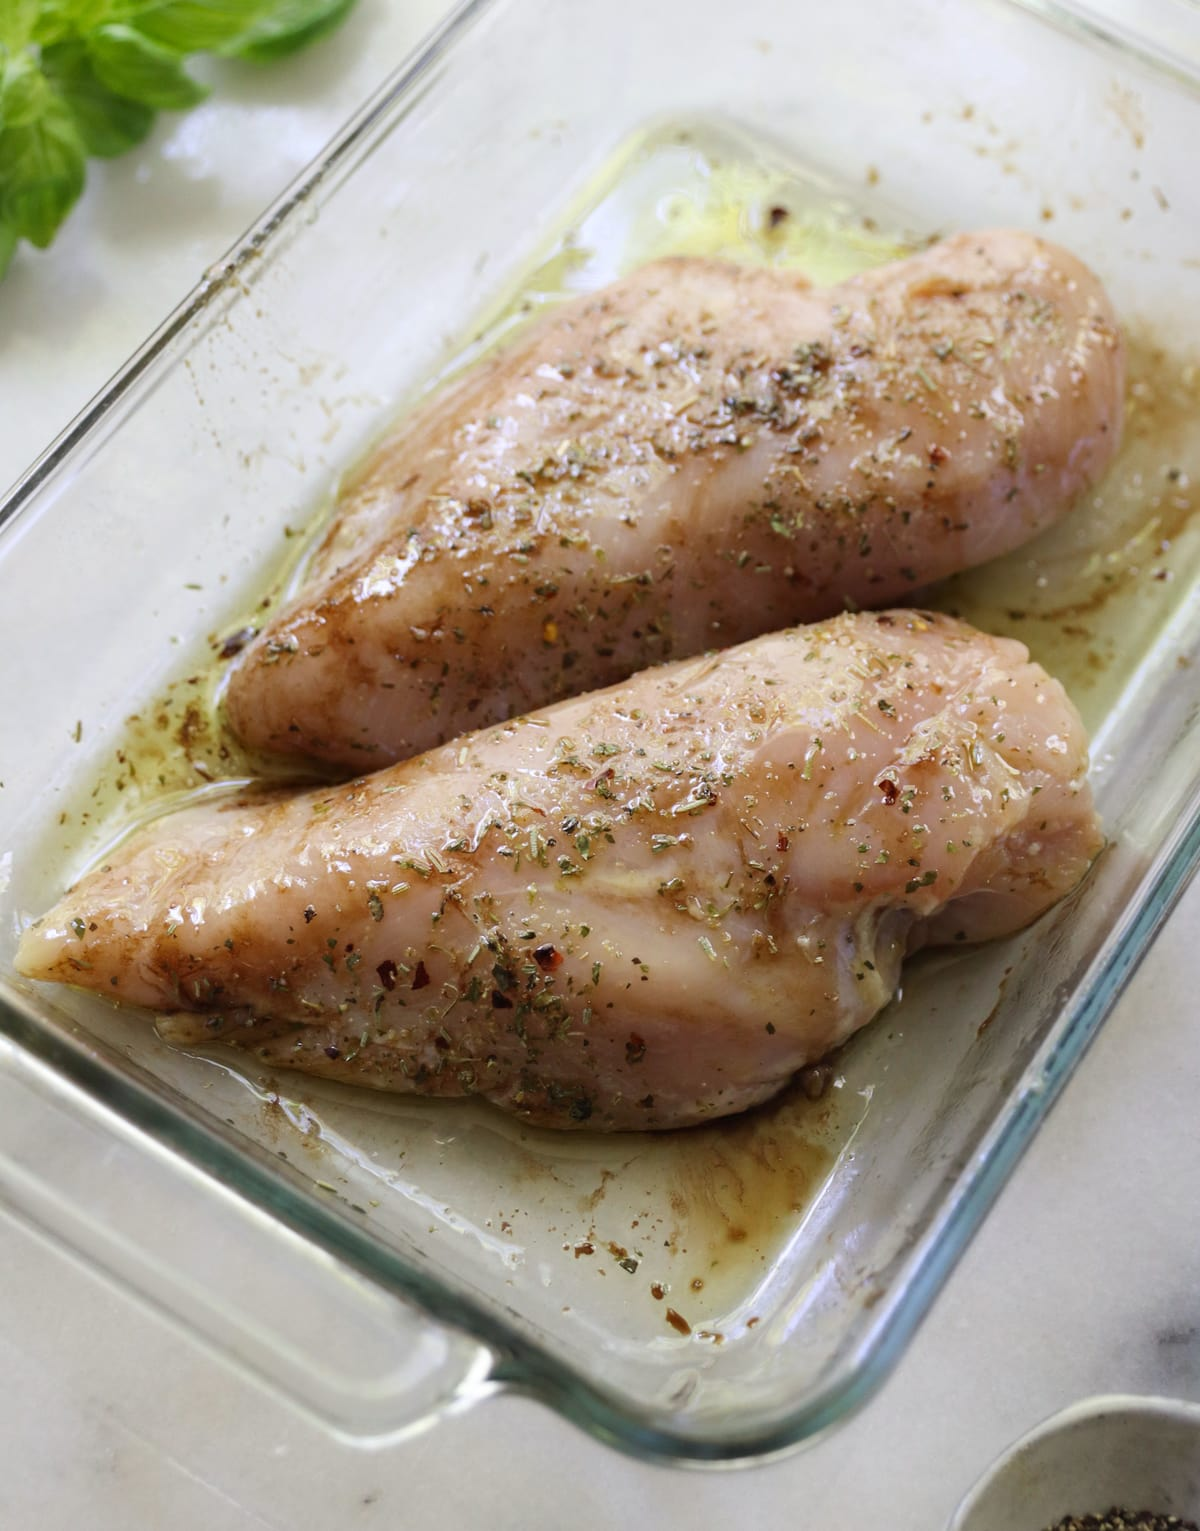 Two chicken breasts marinating in a baking dish.